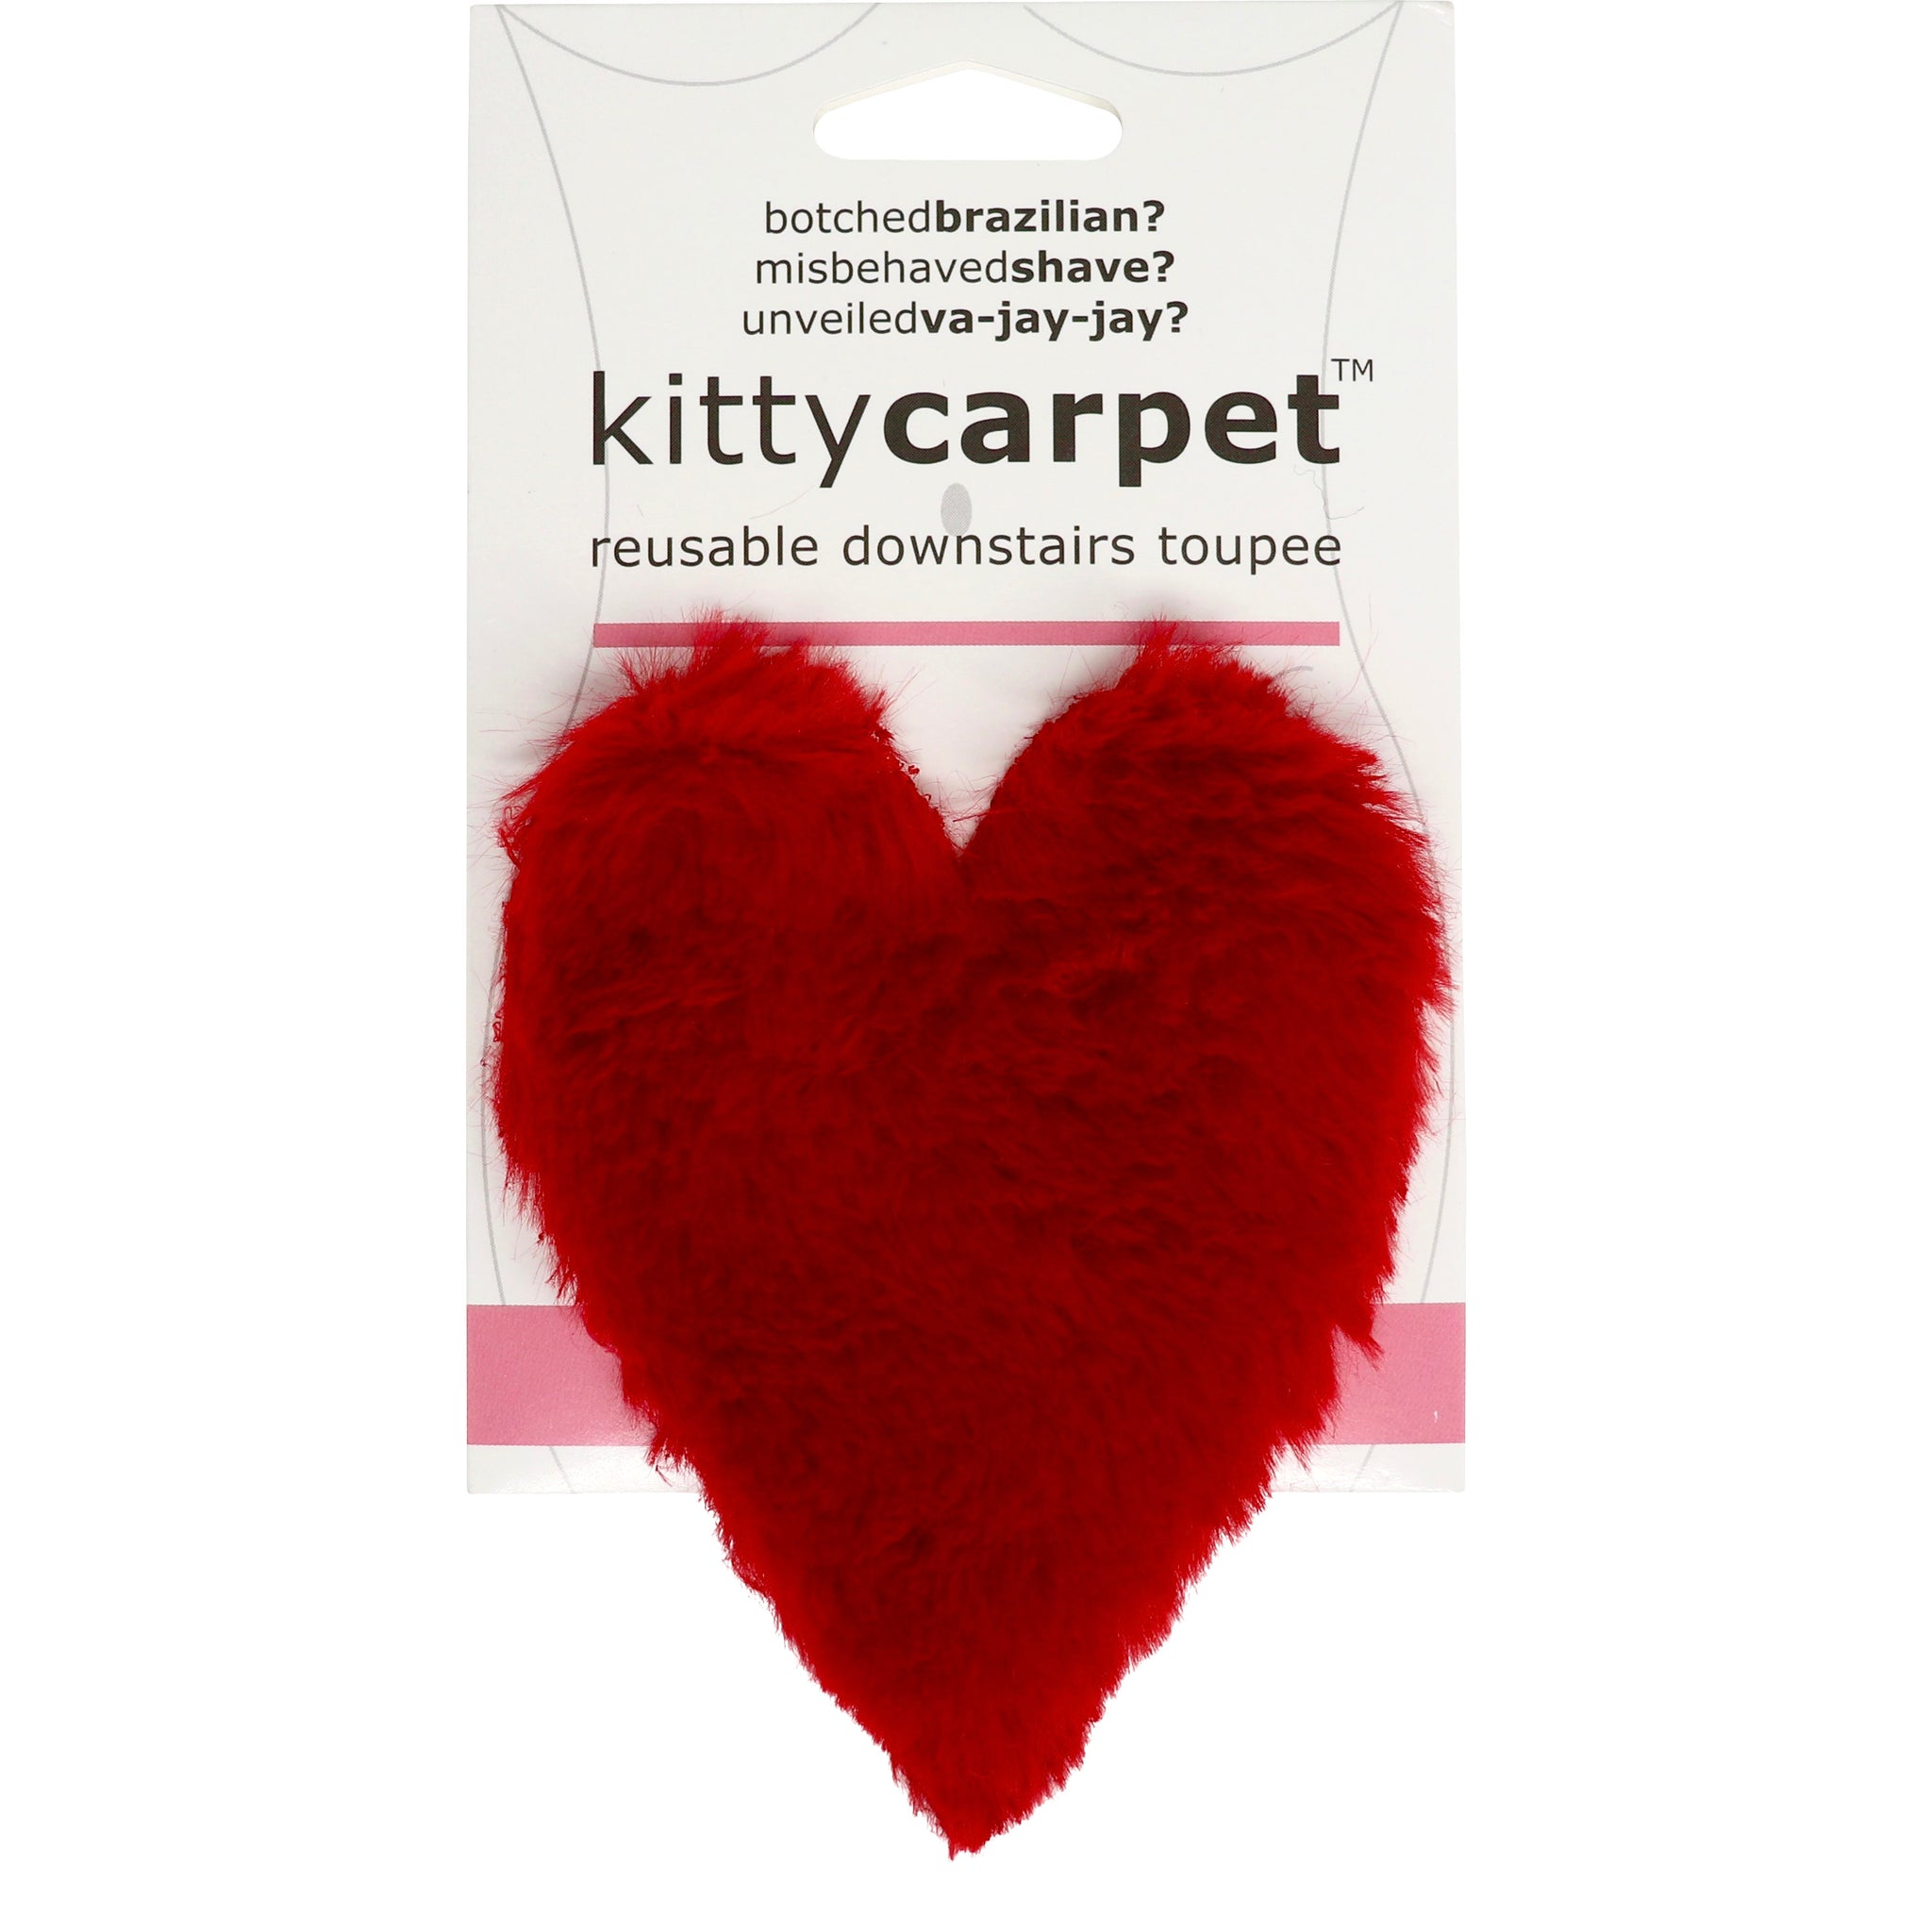 Kitty Carpet Reusable Female Merkin Downstairs Toupee Pubic Wig Fun Delivery